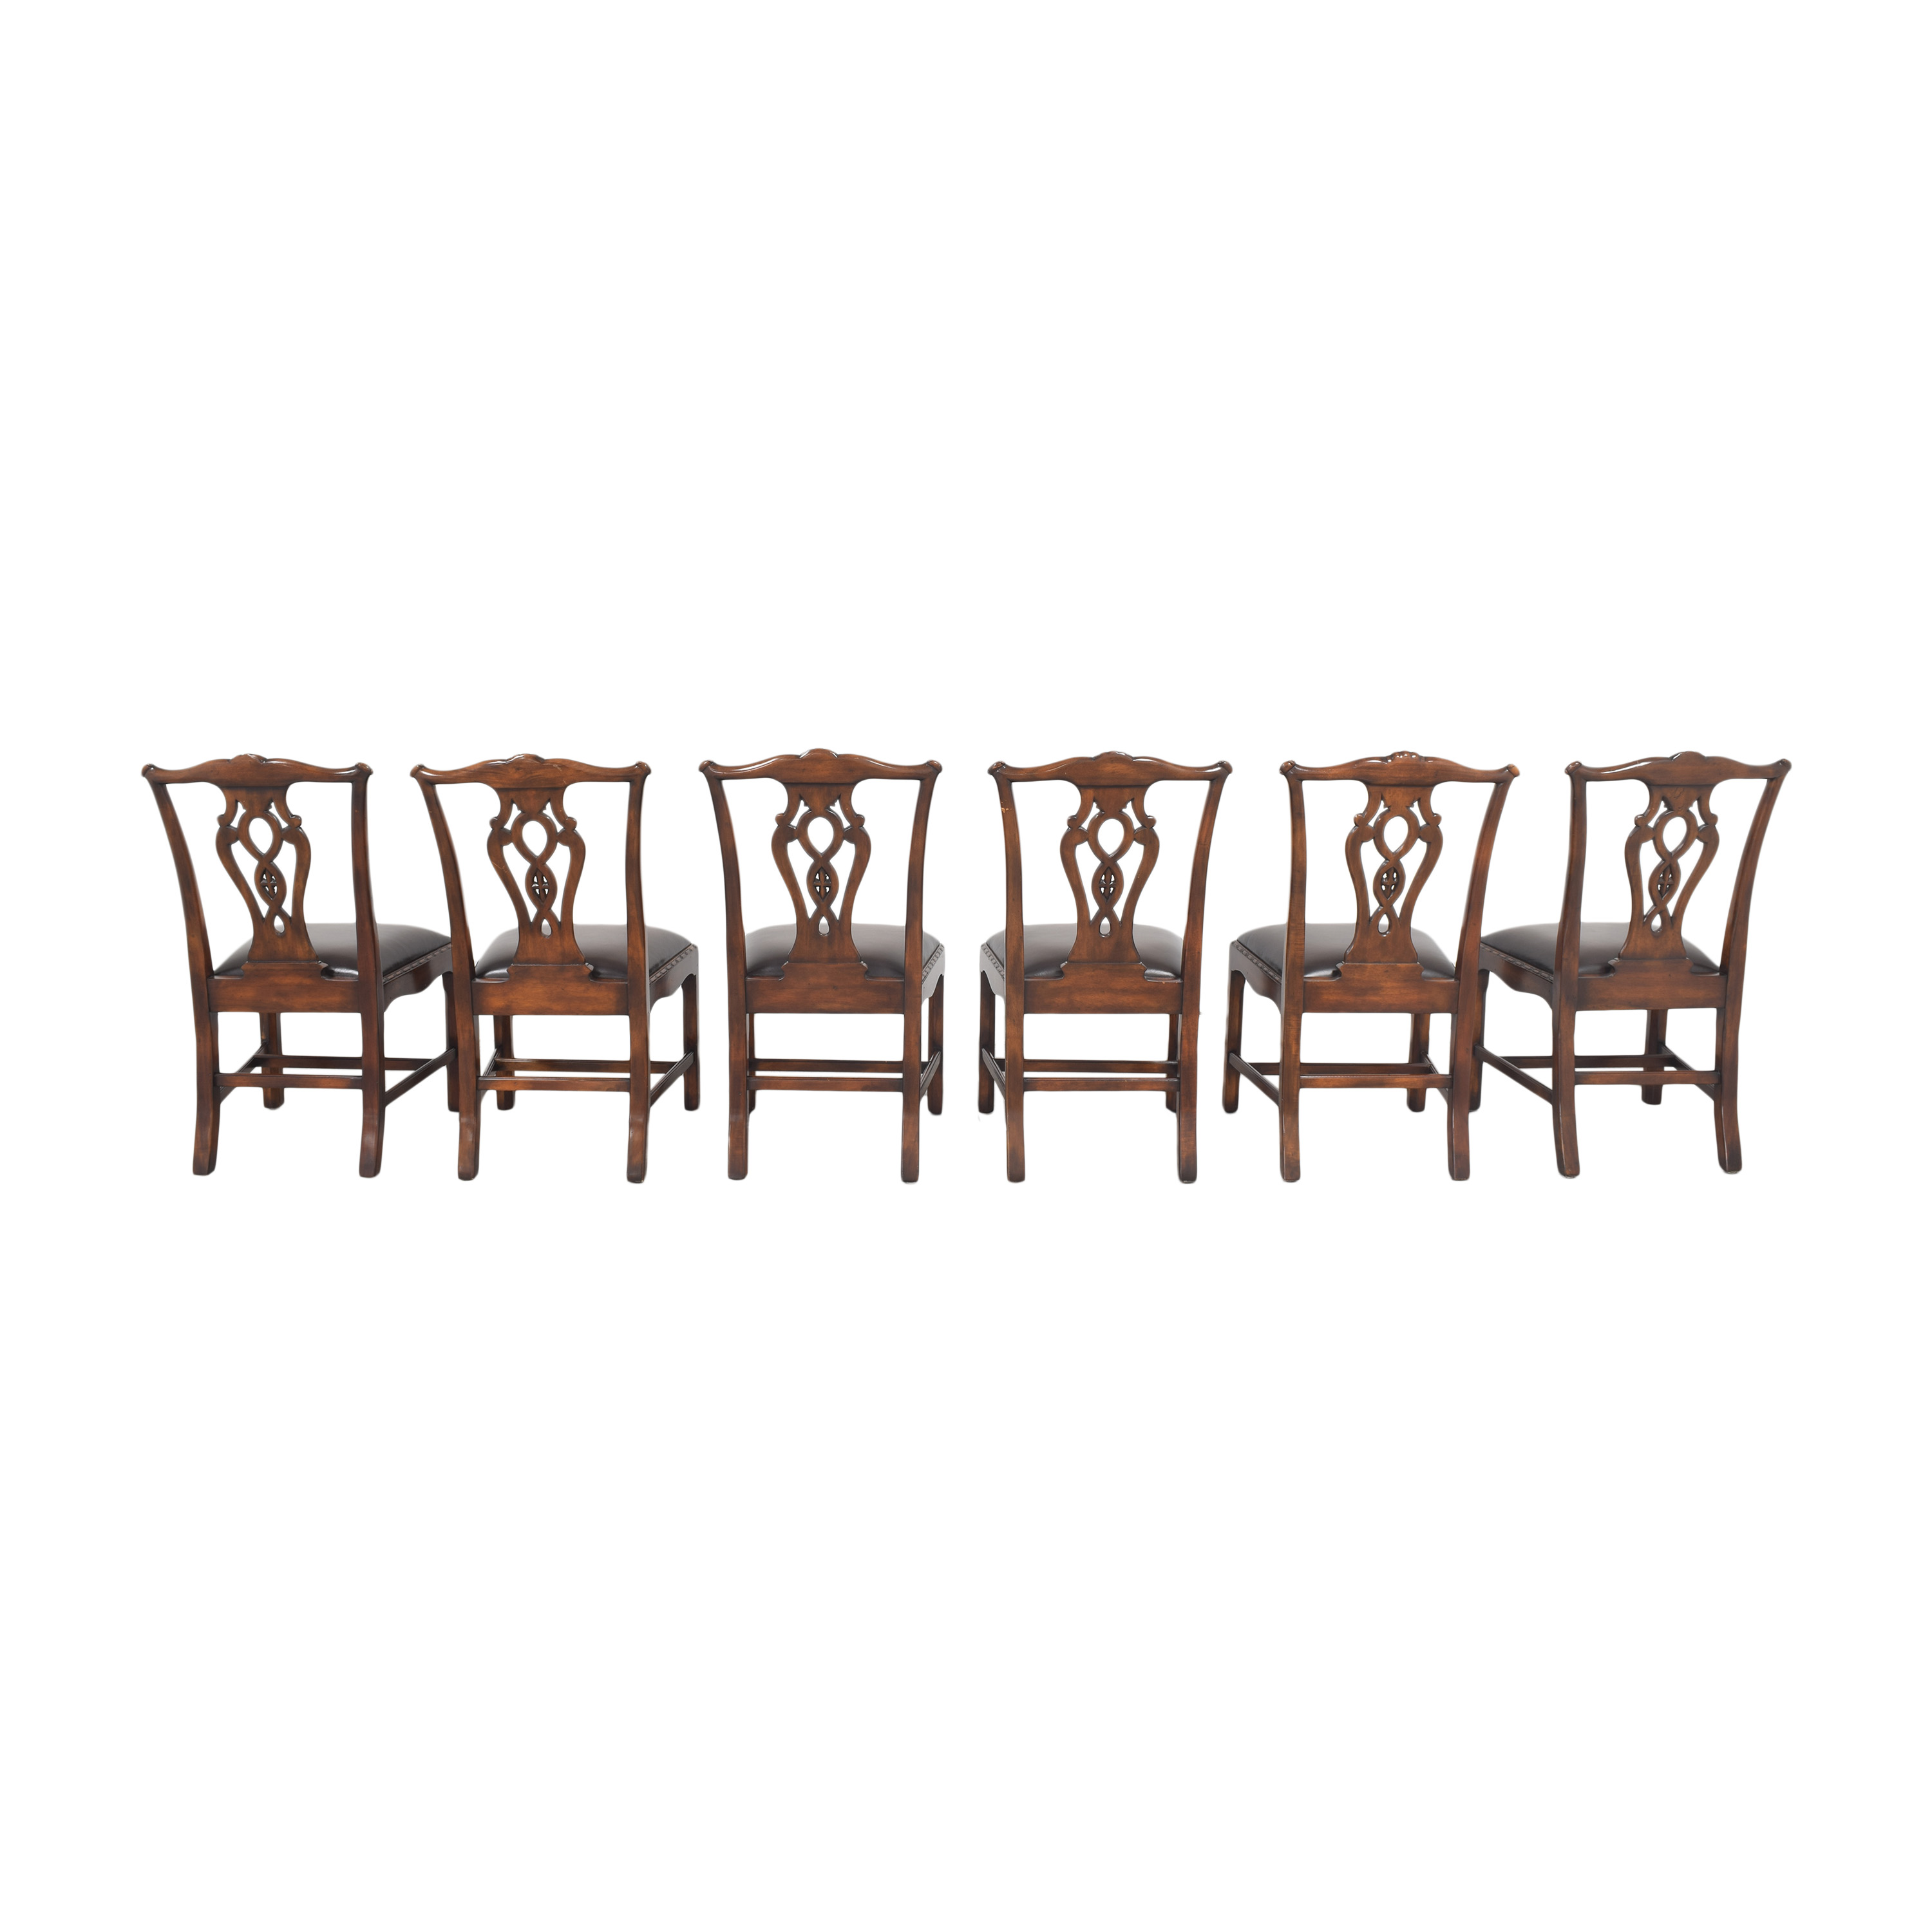 Theodore Alexander Theodore Alexander Queen Anne Dining Chairs second hand